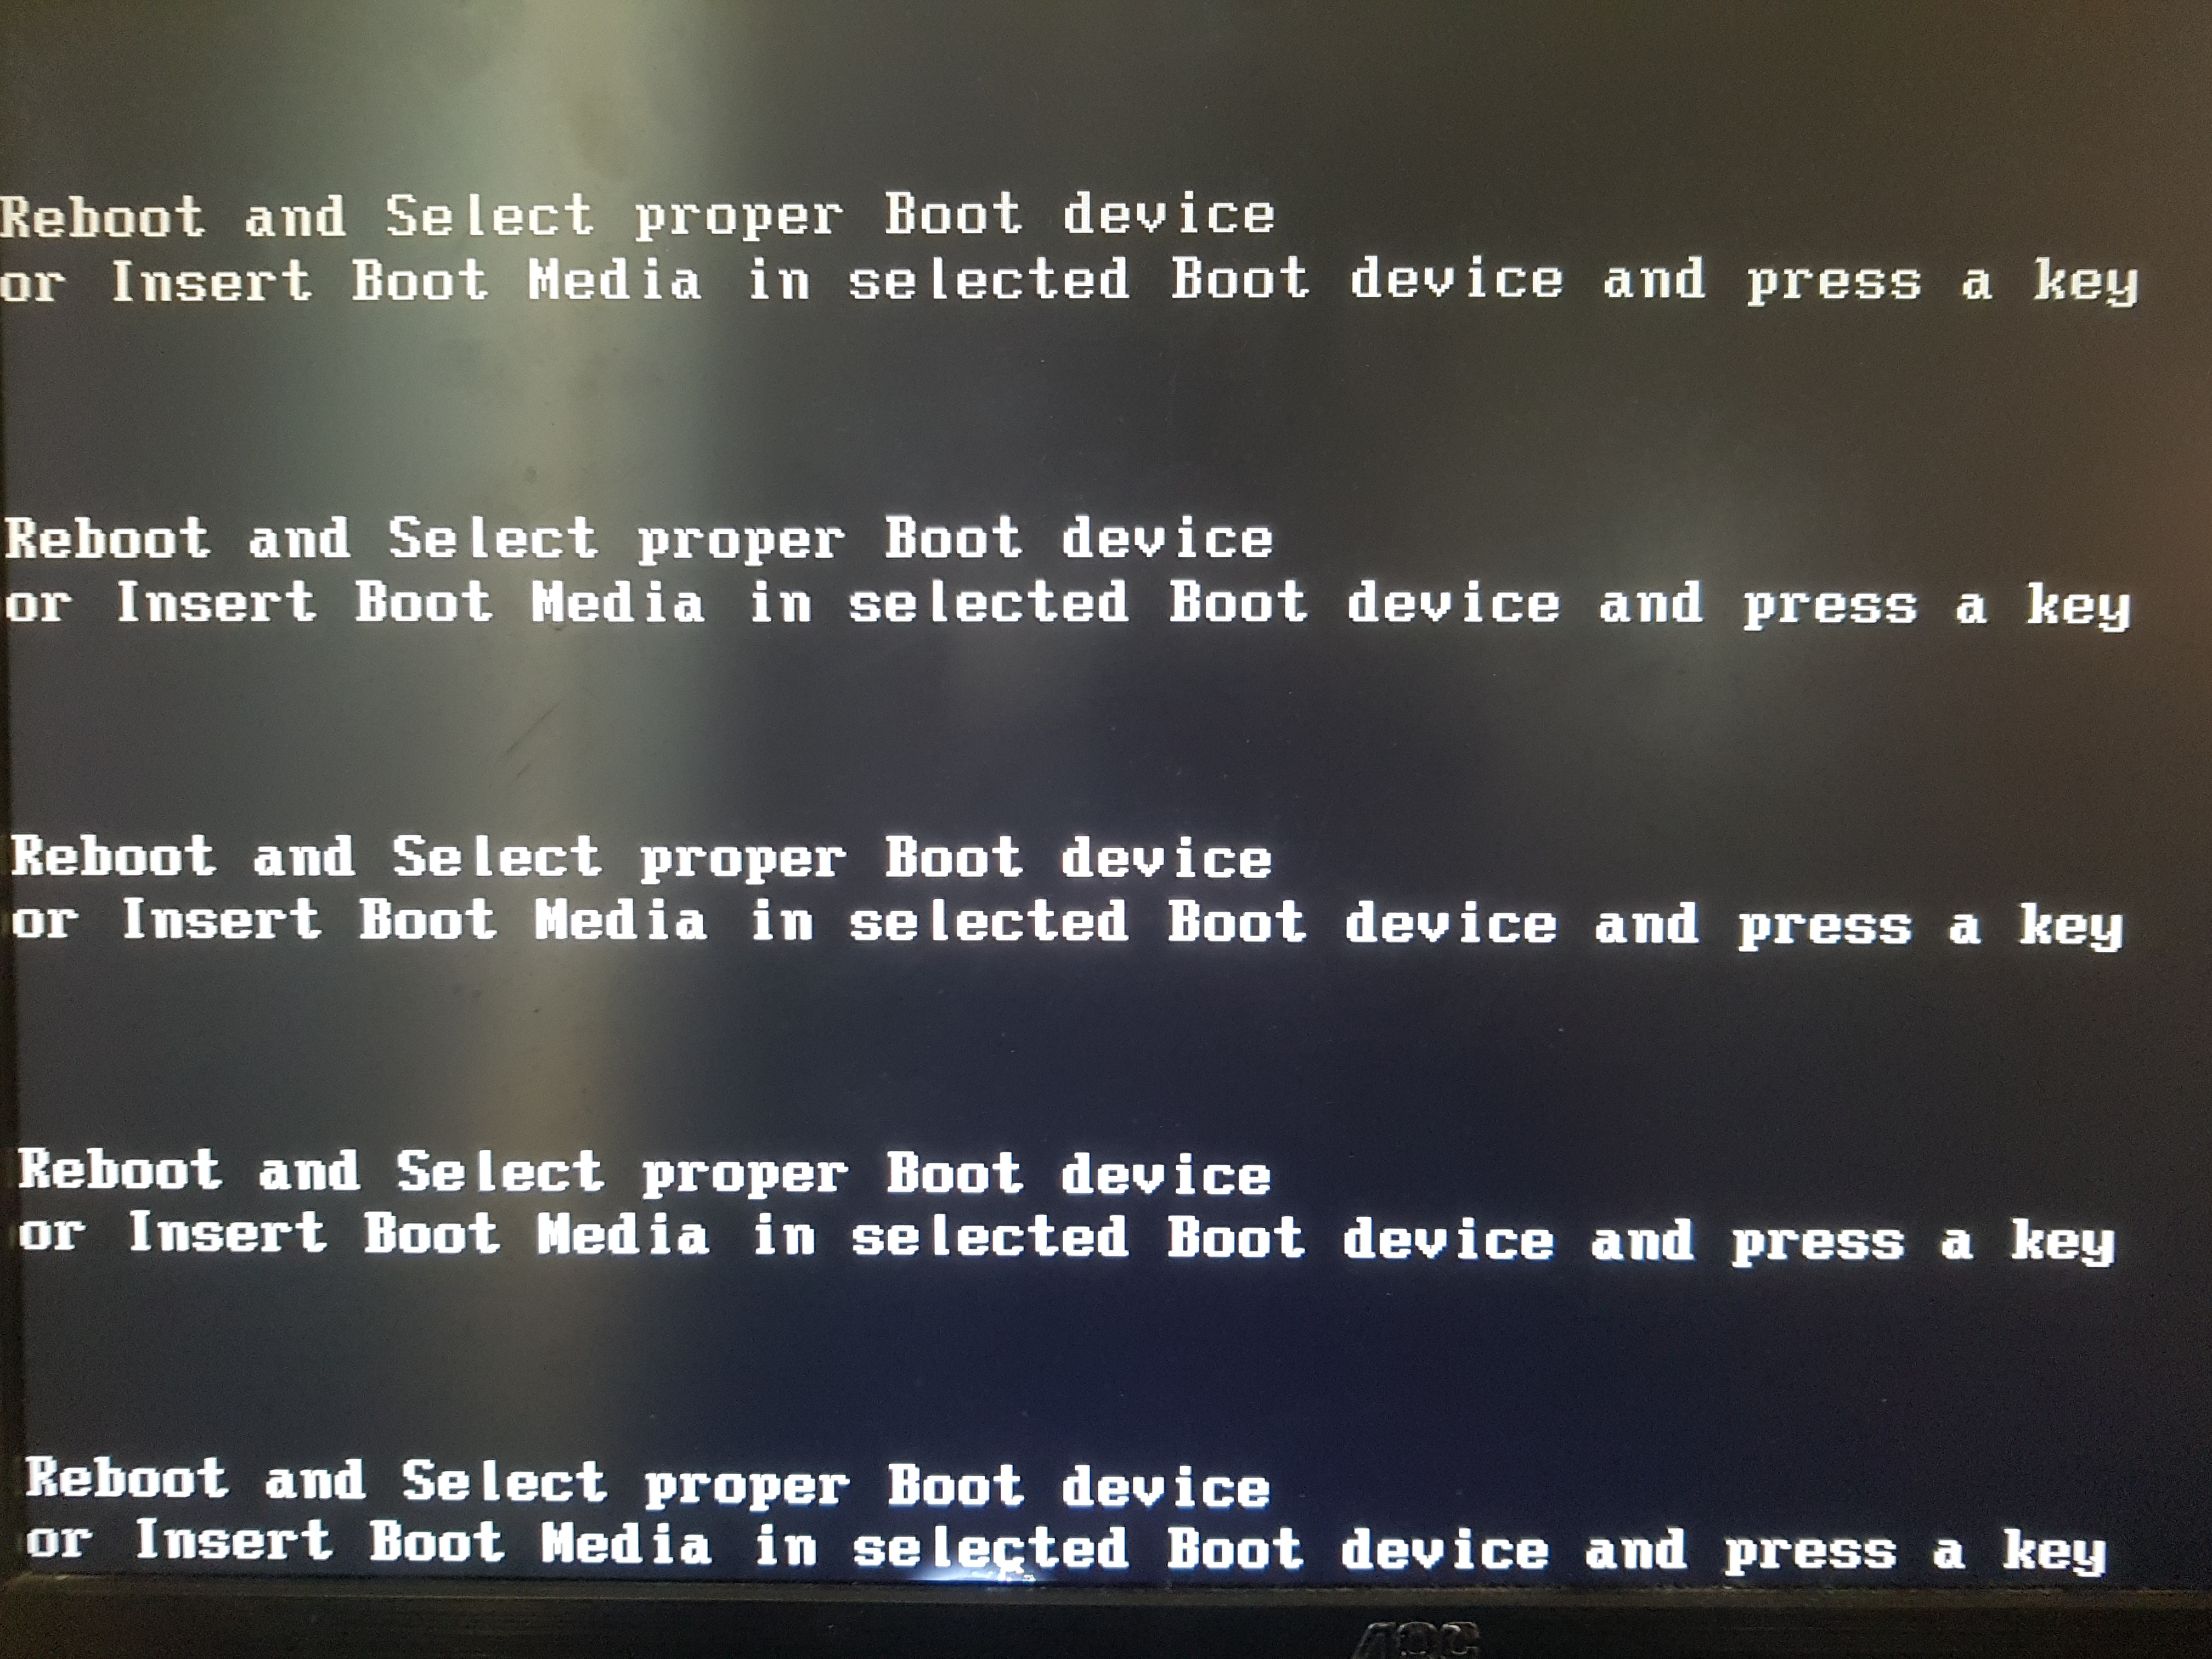 Reboot and select proper boot device? - Troubleshooting